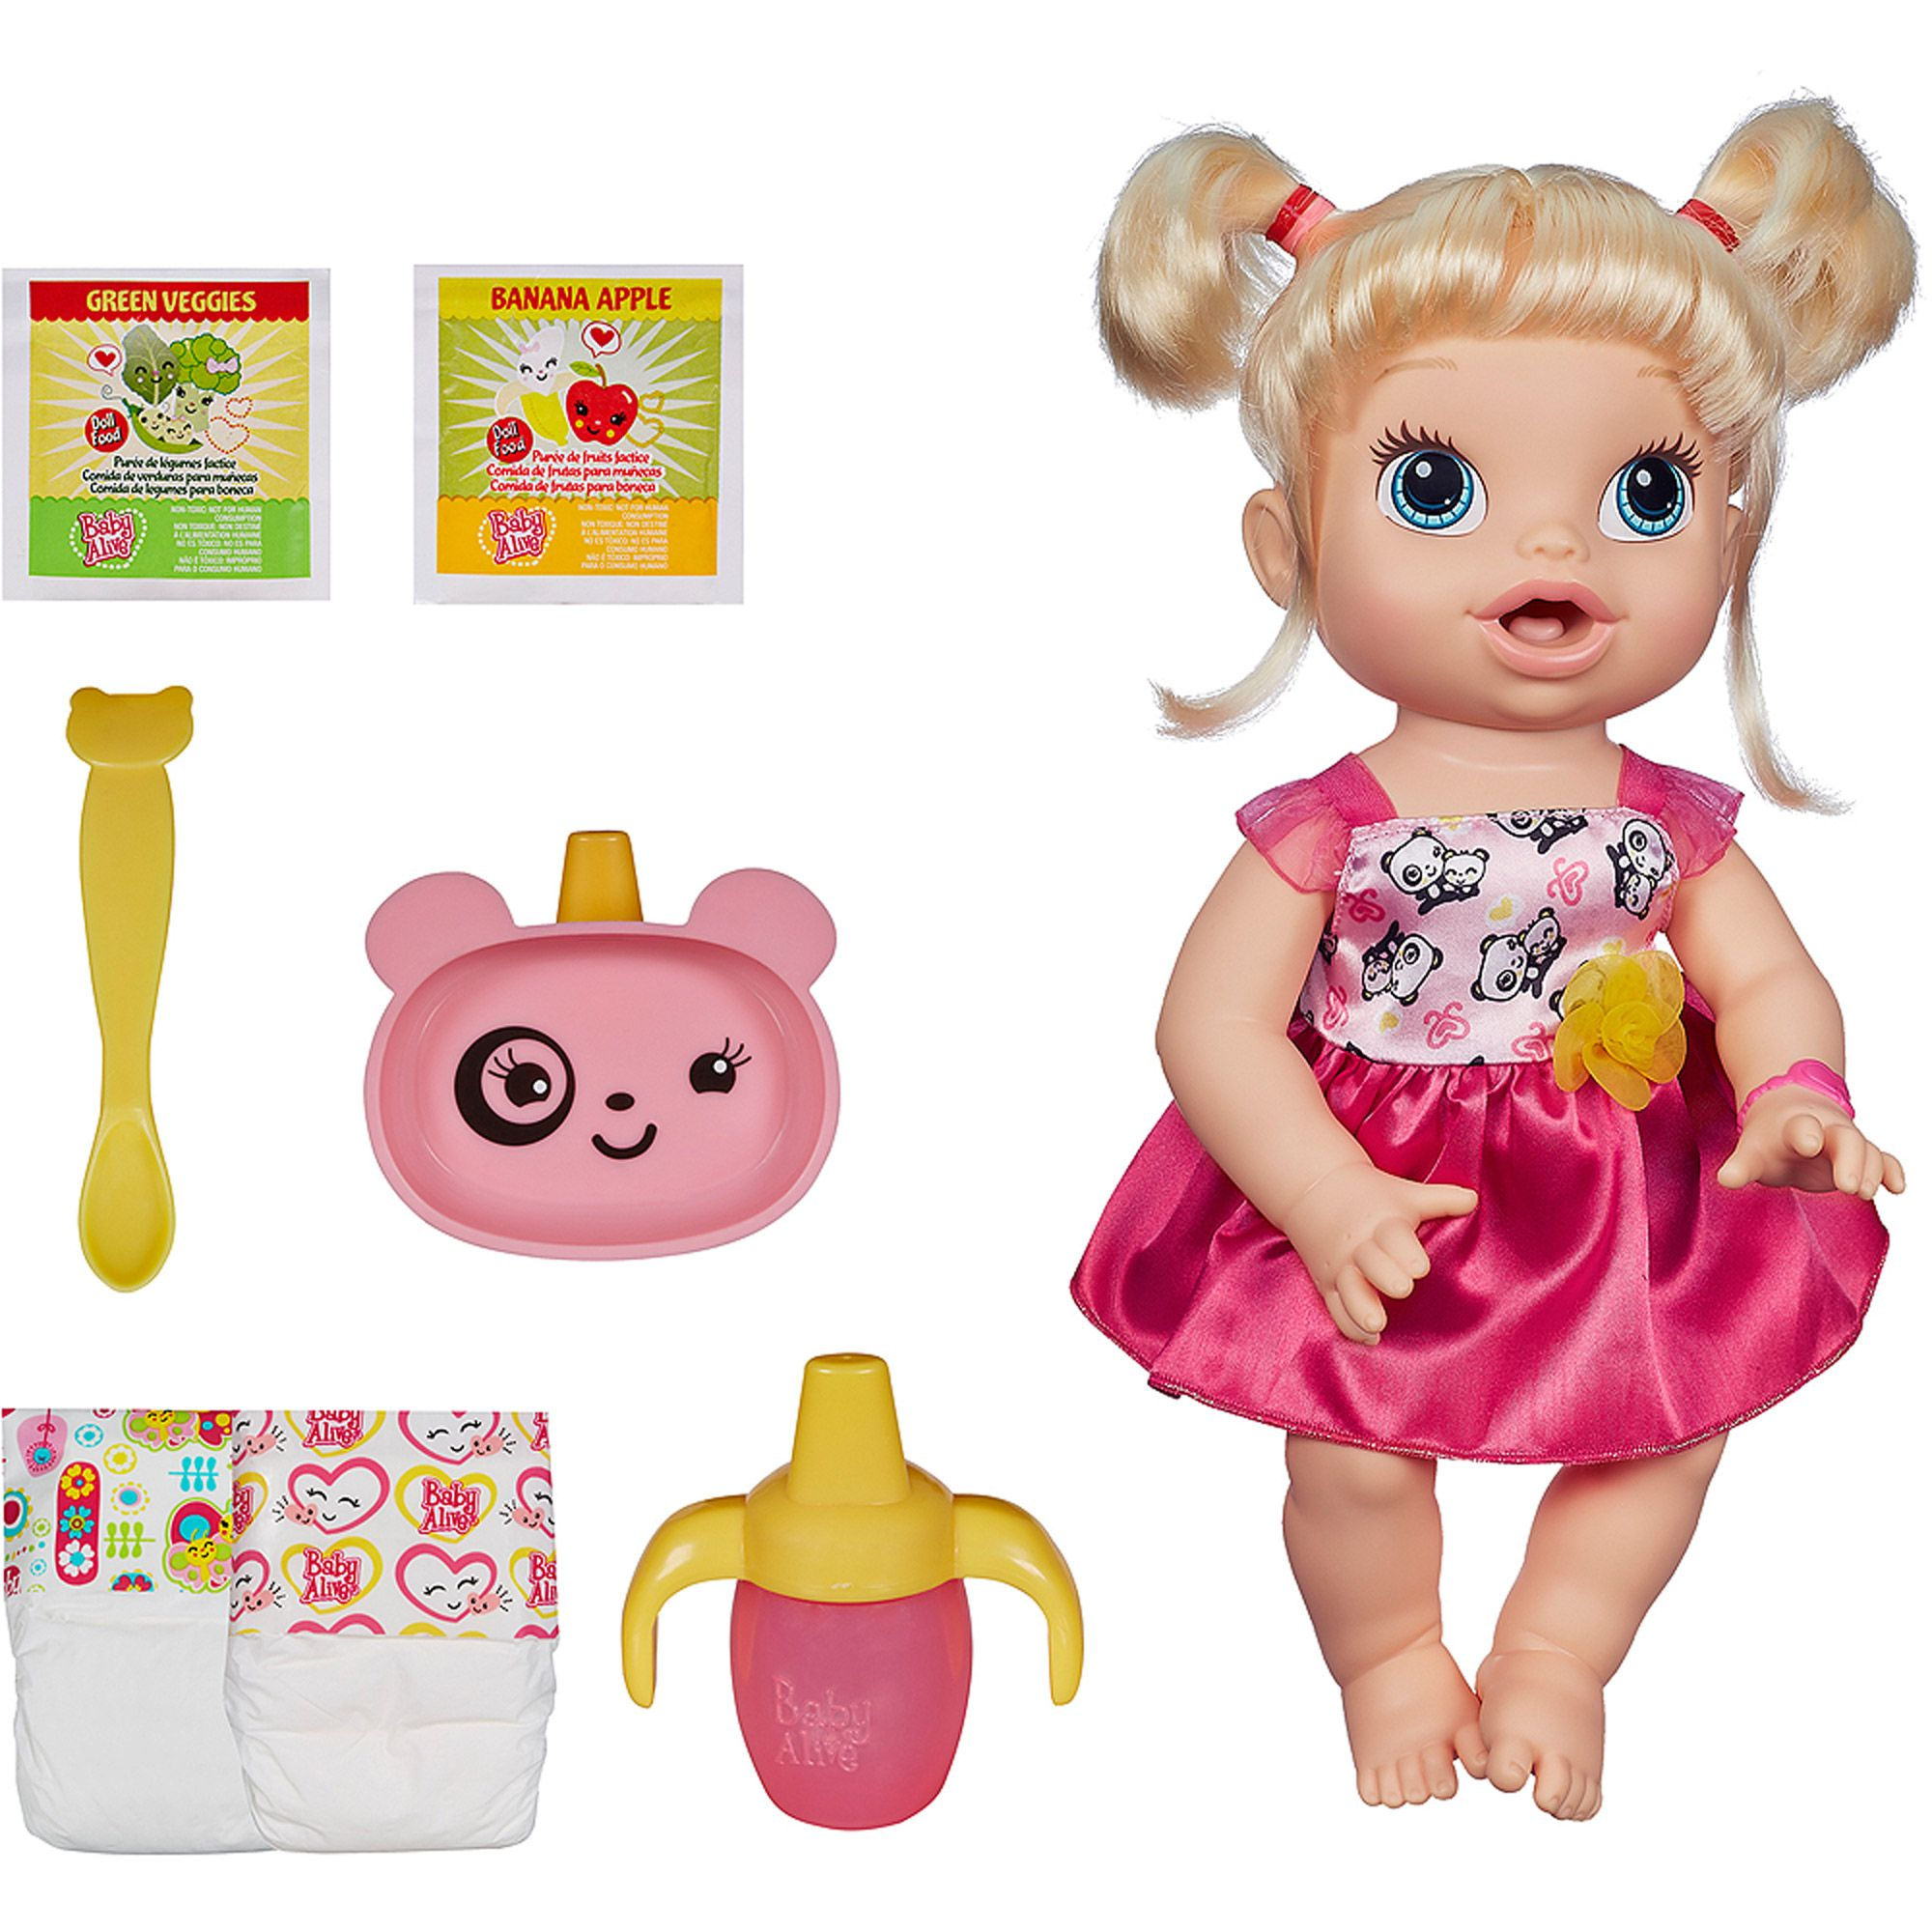 Baby Alive And All Related Characters Are Trademarks Of Hasbro